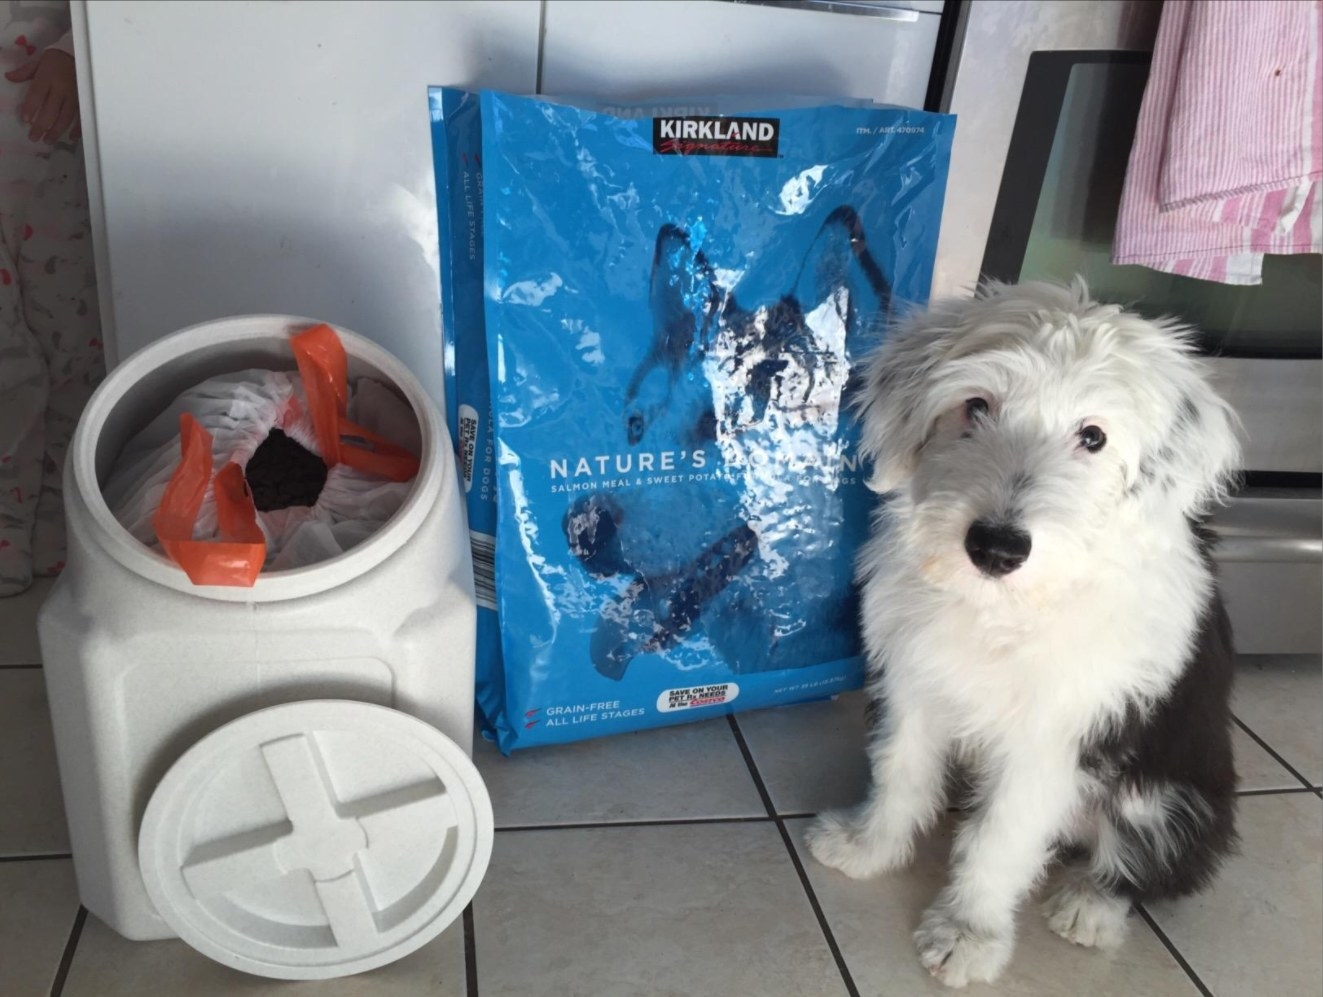 A dog waiting to be fed from the food storage container